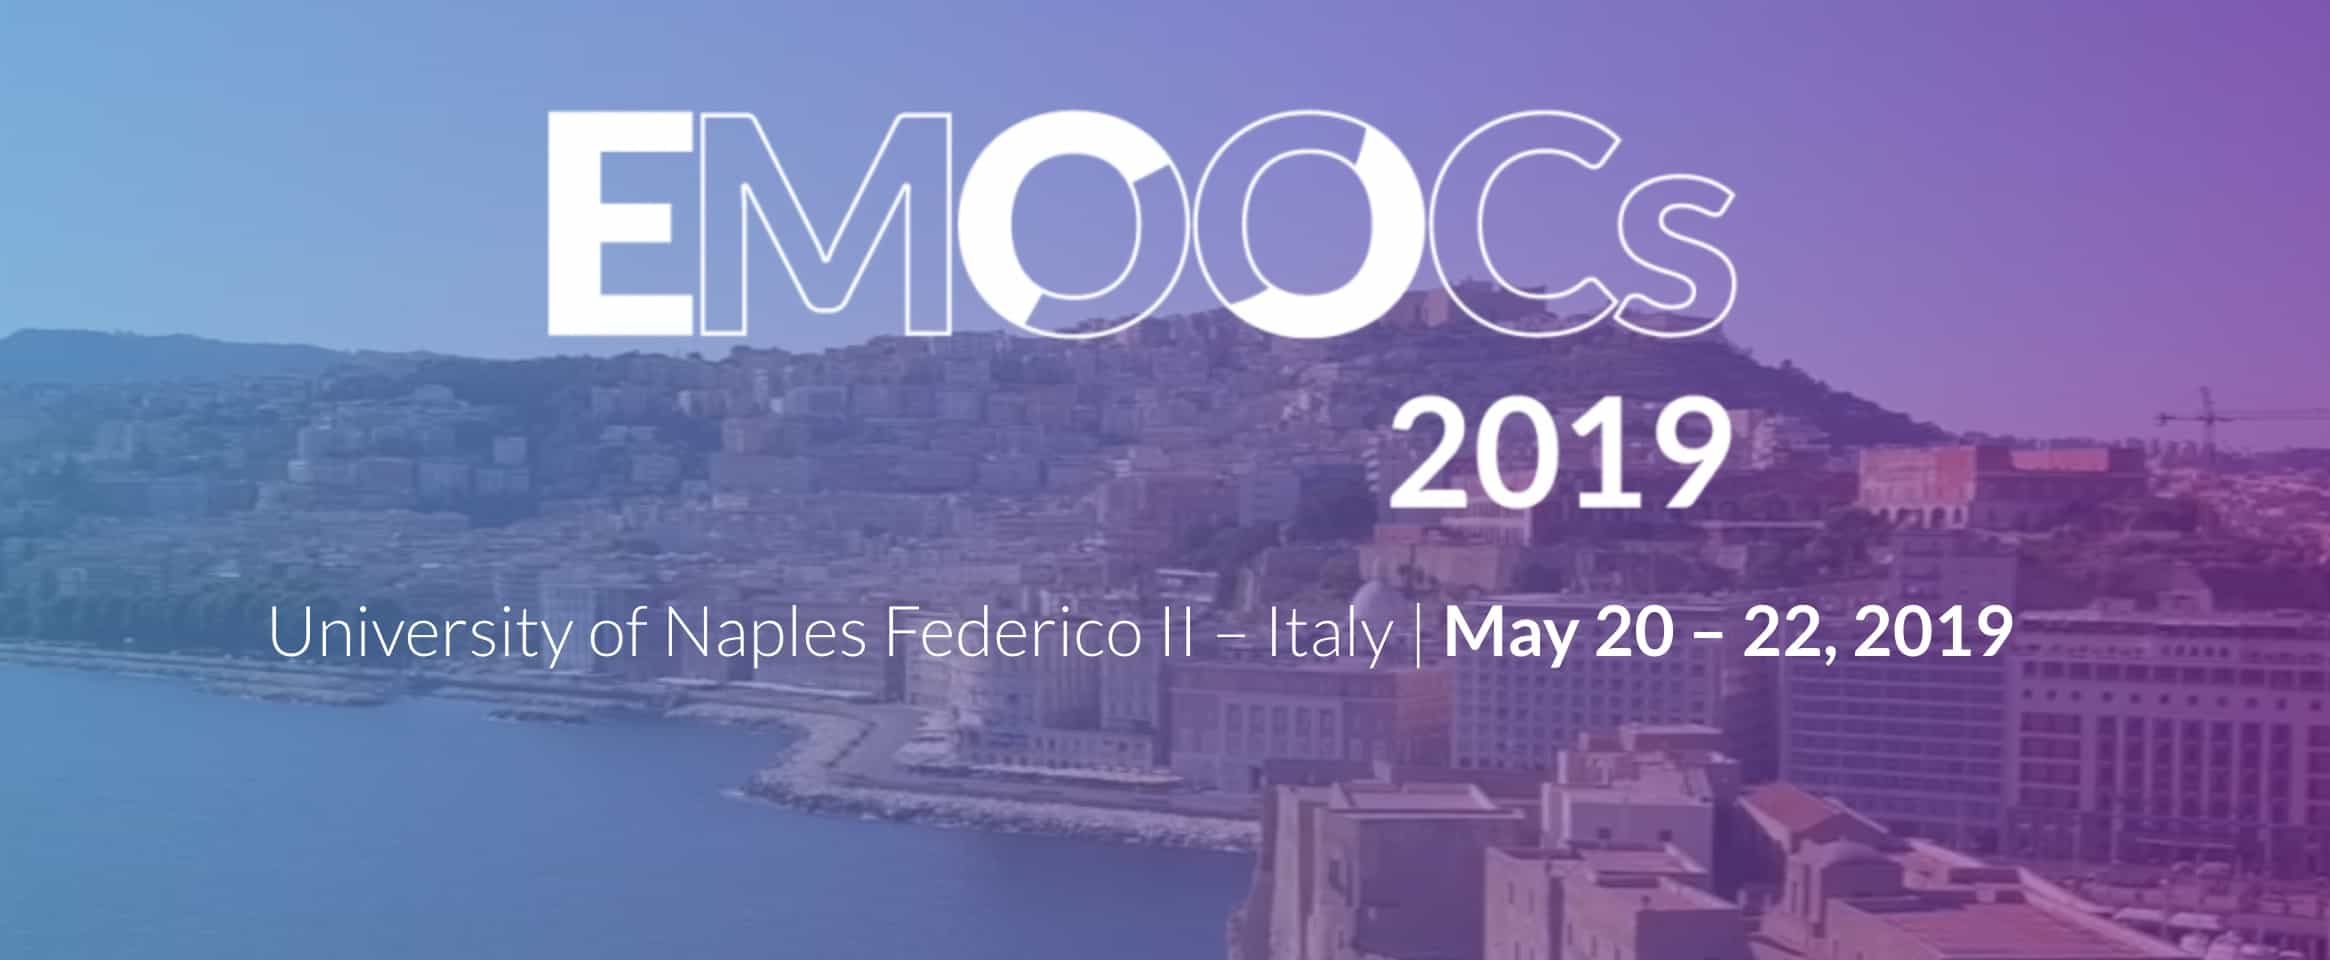 Getting Ready for EMOOCs 2019